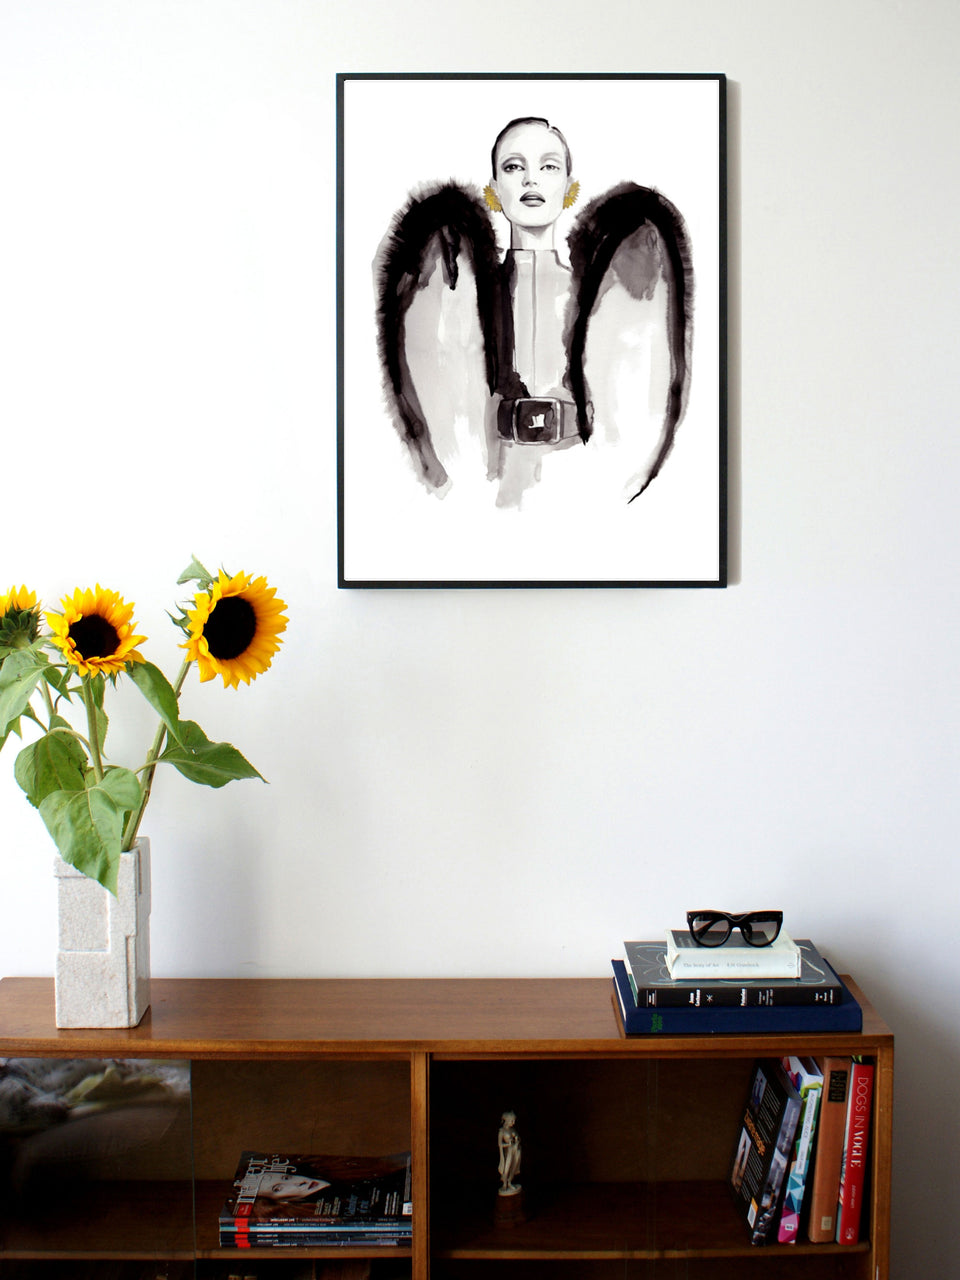 Fashion illustration print of YSL Wings by Sjoukje Bierma - woman with couture wings - 60 x 80 cm framed